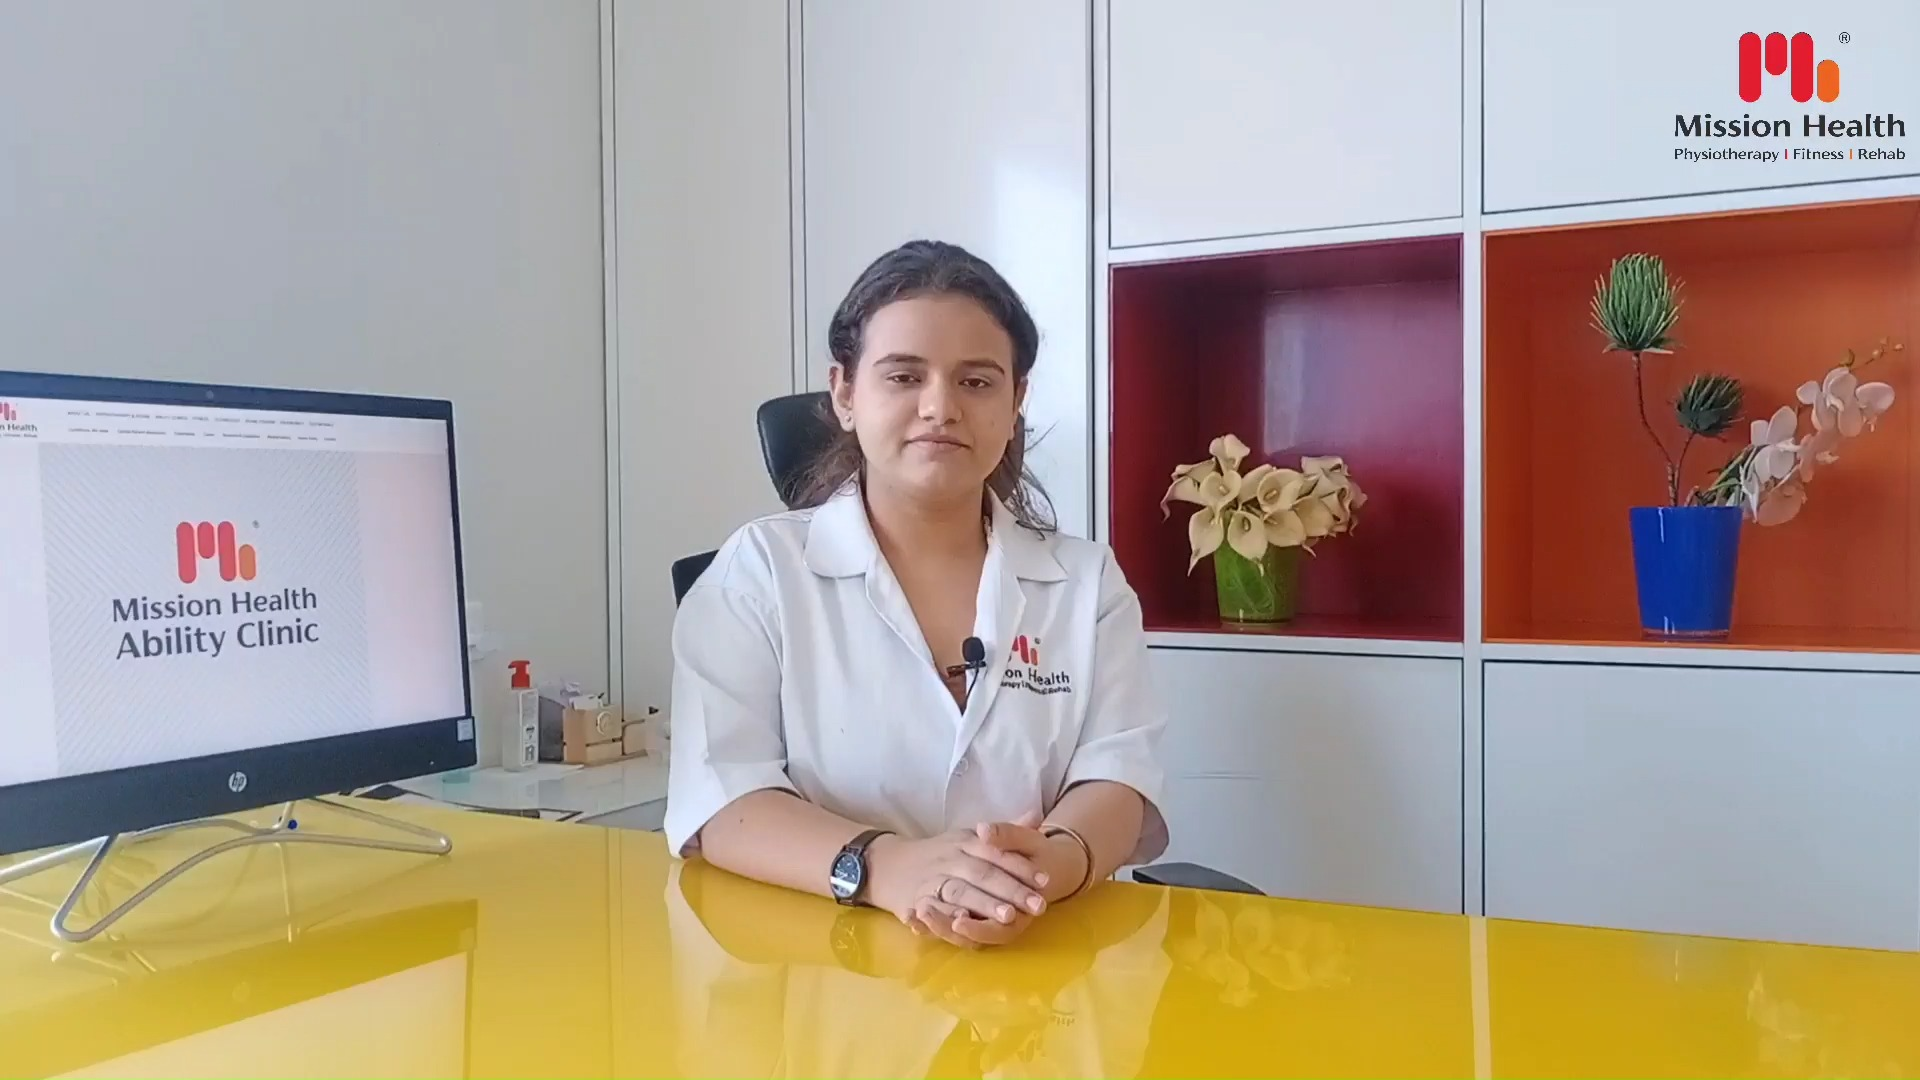 The idea to revolutionize the treatment in patients with Neurological problems constantly motivated Dr. Aalap Shah & Dr. Disha Shah...  Travelling across more than 13 countries and researching extensively in the field of Neurology, Mission Health launched Asia's first ever Advanced Rehab Centre in Ahmedabad,